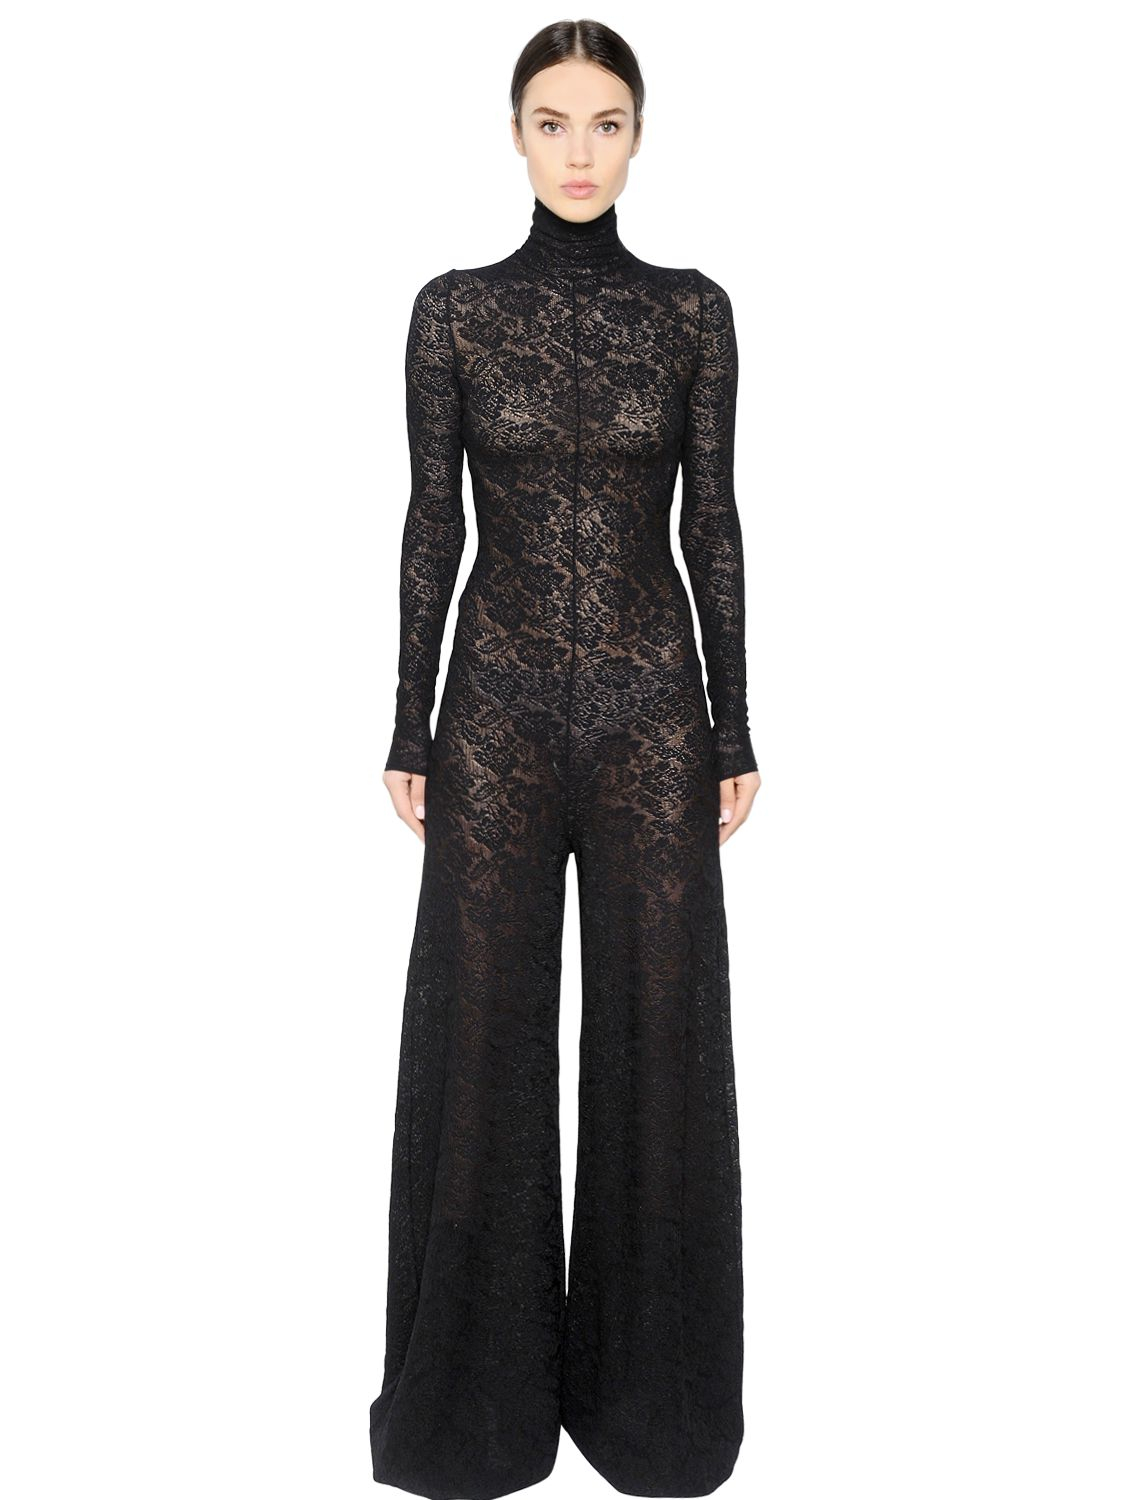 Black Lace Jumpsuit Photo Album - Reikian